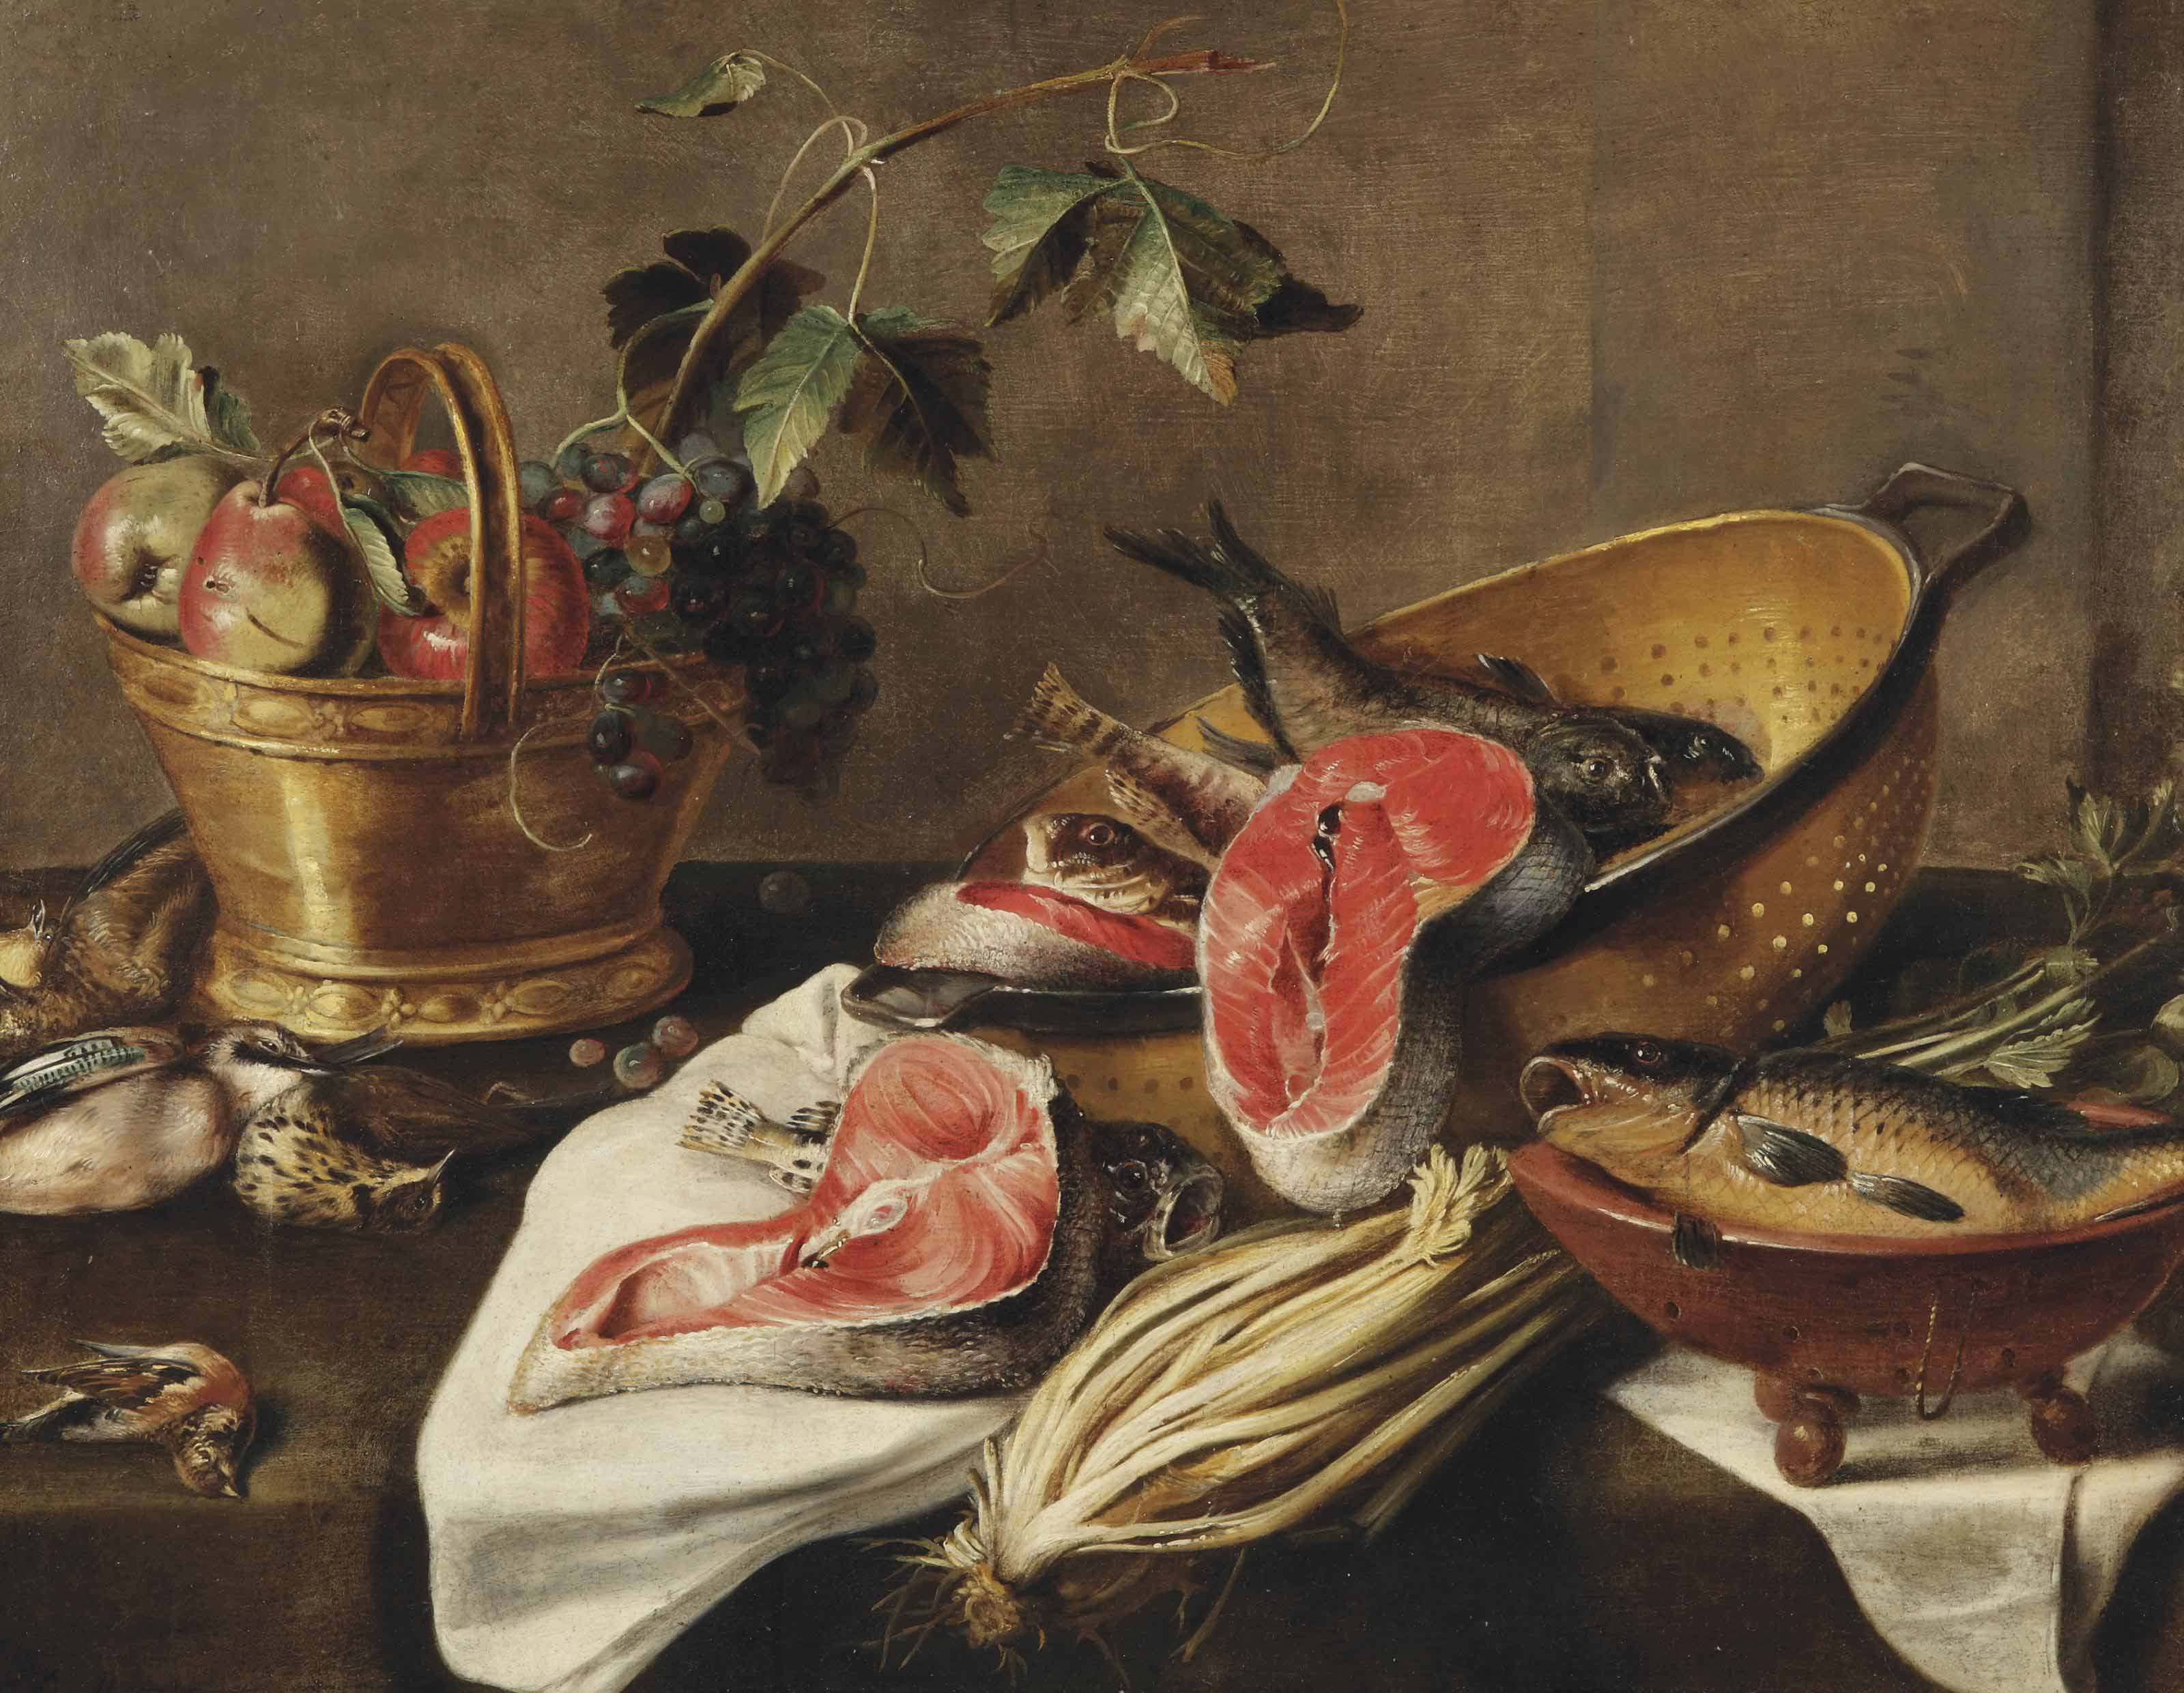 A copper basket with apples, grapes, a Eurasian jay, a thrush and a bullfinch, salmon and various other fish in a colander, a stump of celery, all on a draped table